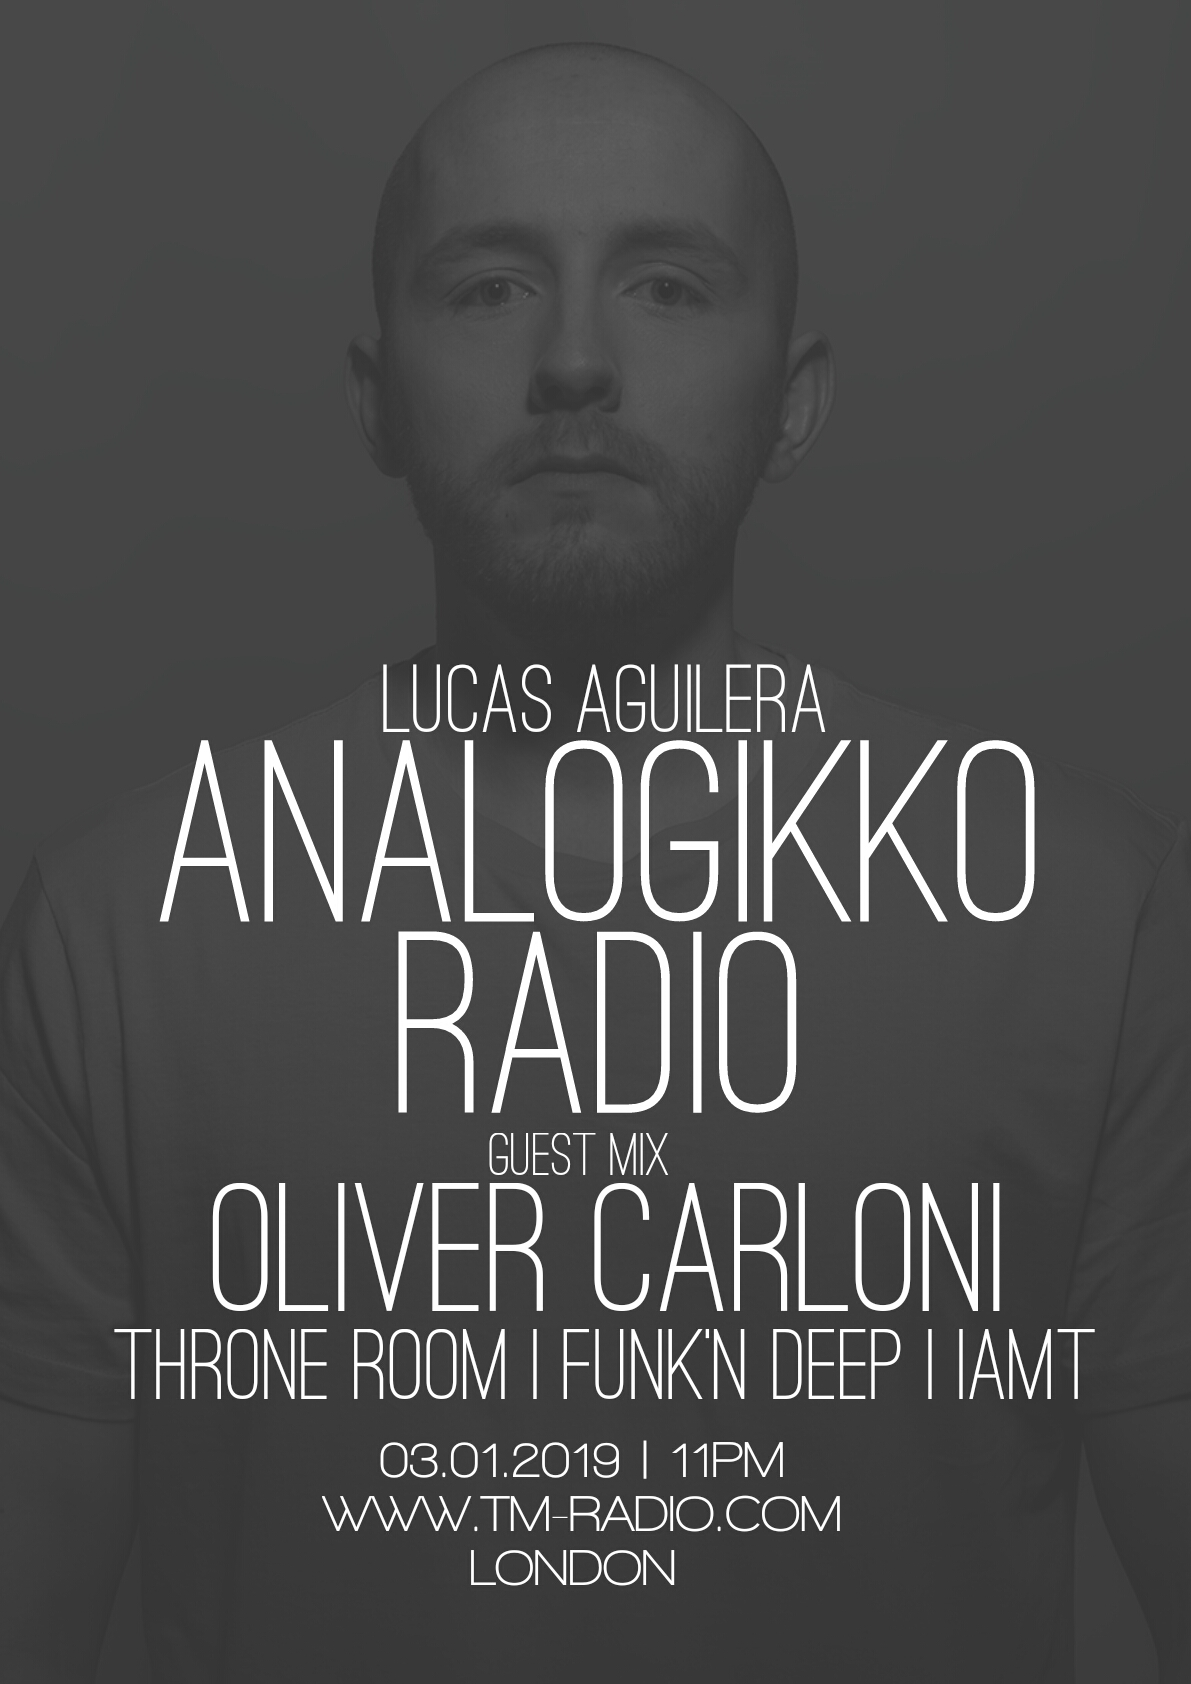 Analogikko Radio :: ANALOGIKKO RADIO BY LUCAS AGUILERA - OLIVER CARLONI - GUEST MIX - TM RADIO - Episode 051 (aired on March 1st, 2019) banner logo